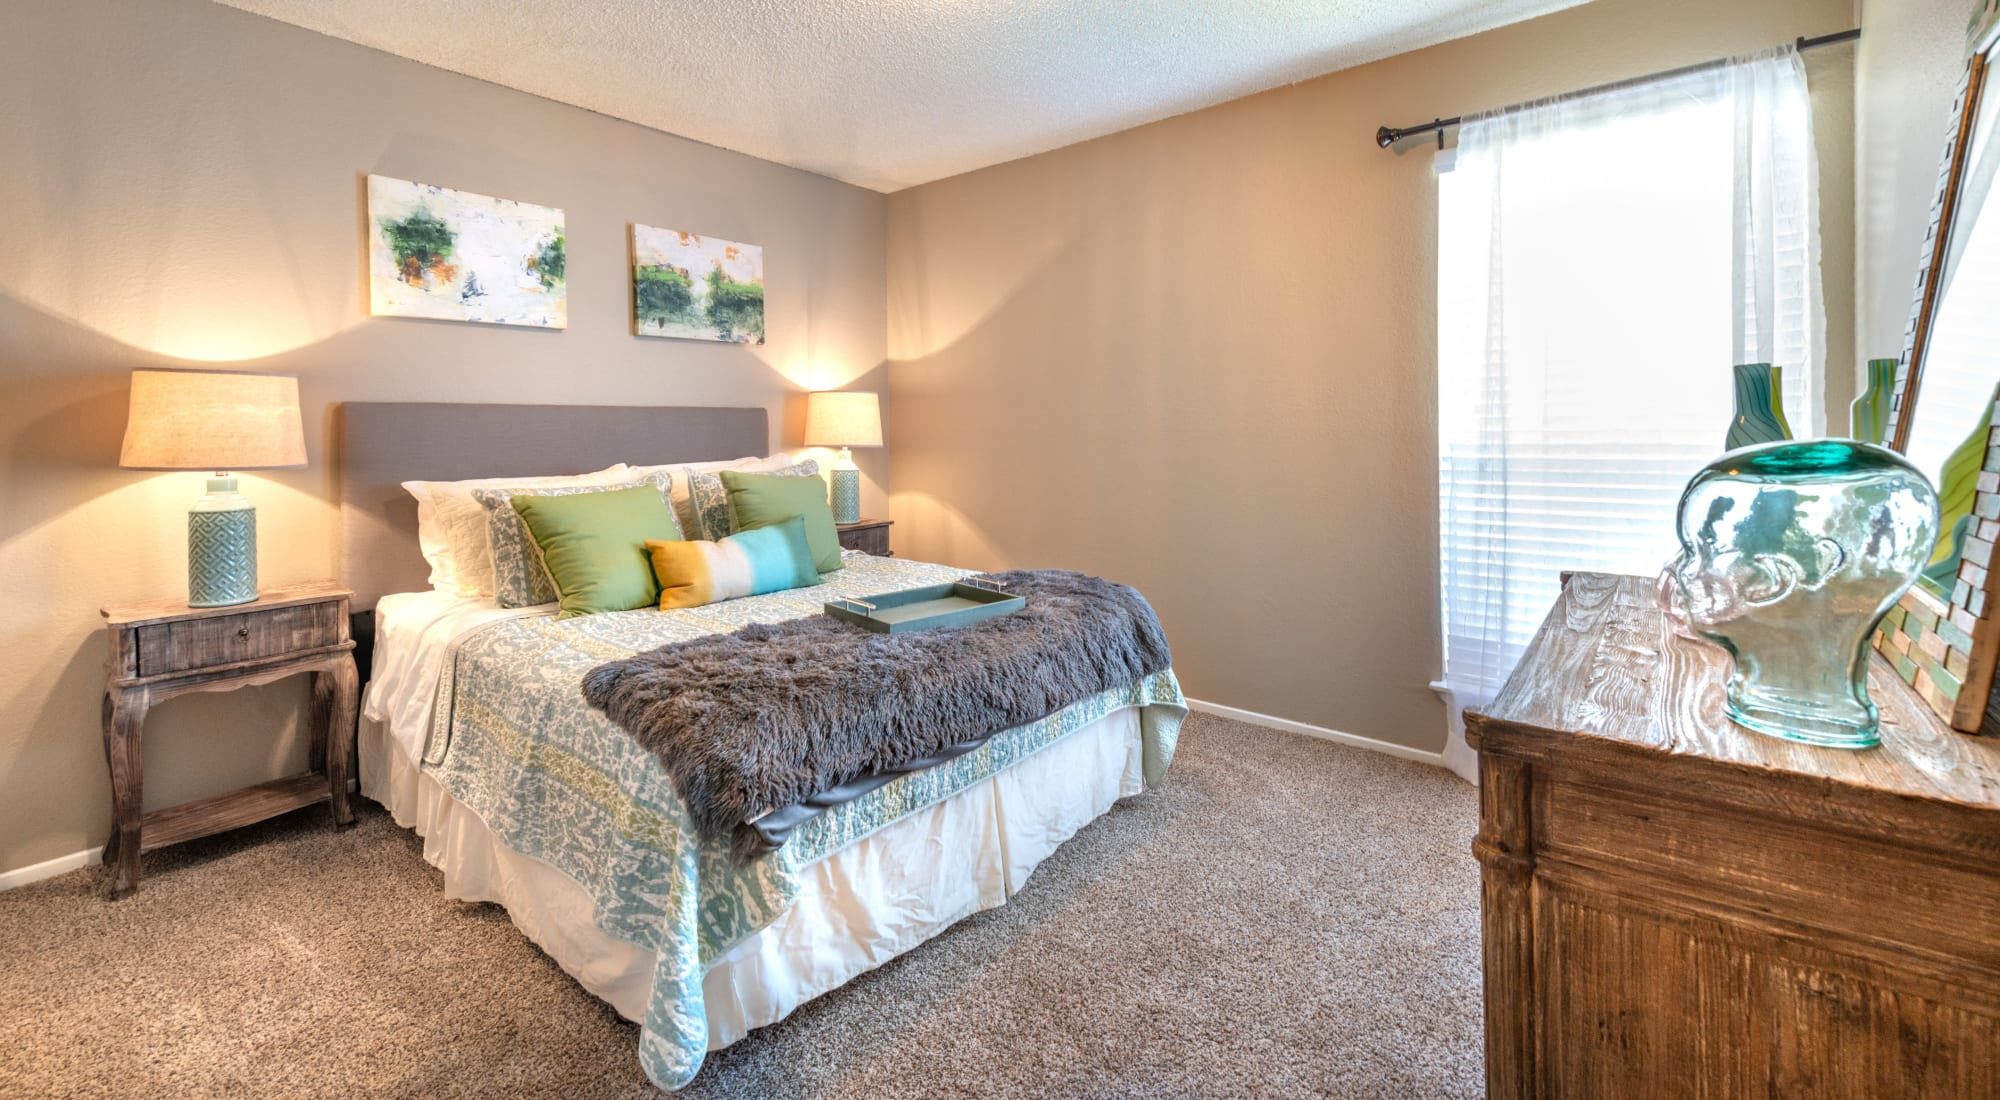 Apply to live at 8500 Harwood Apartment Homes in North Richland Hills, Texas